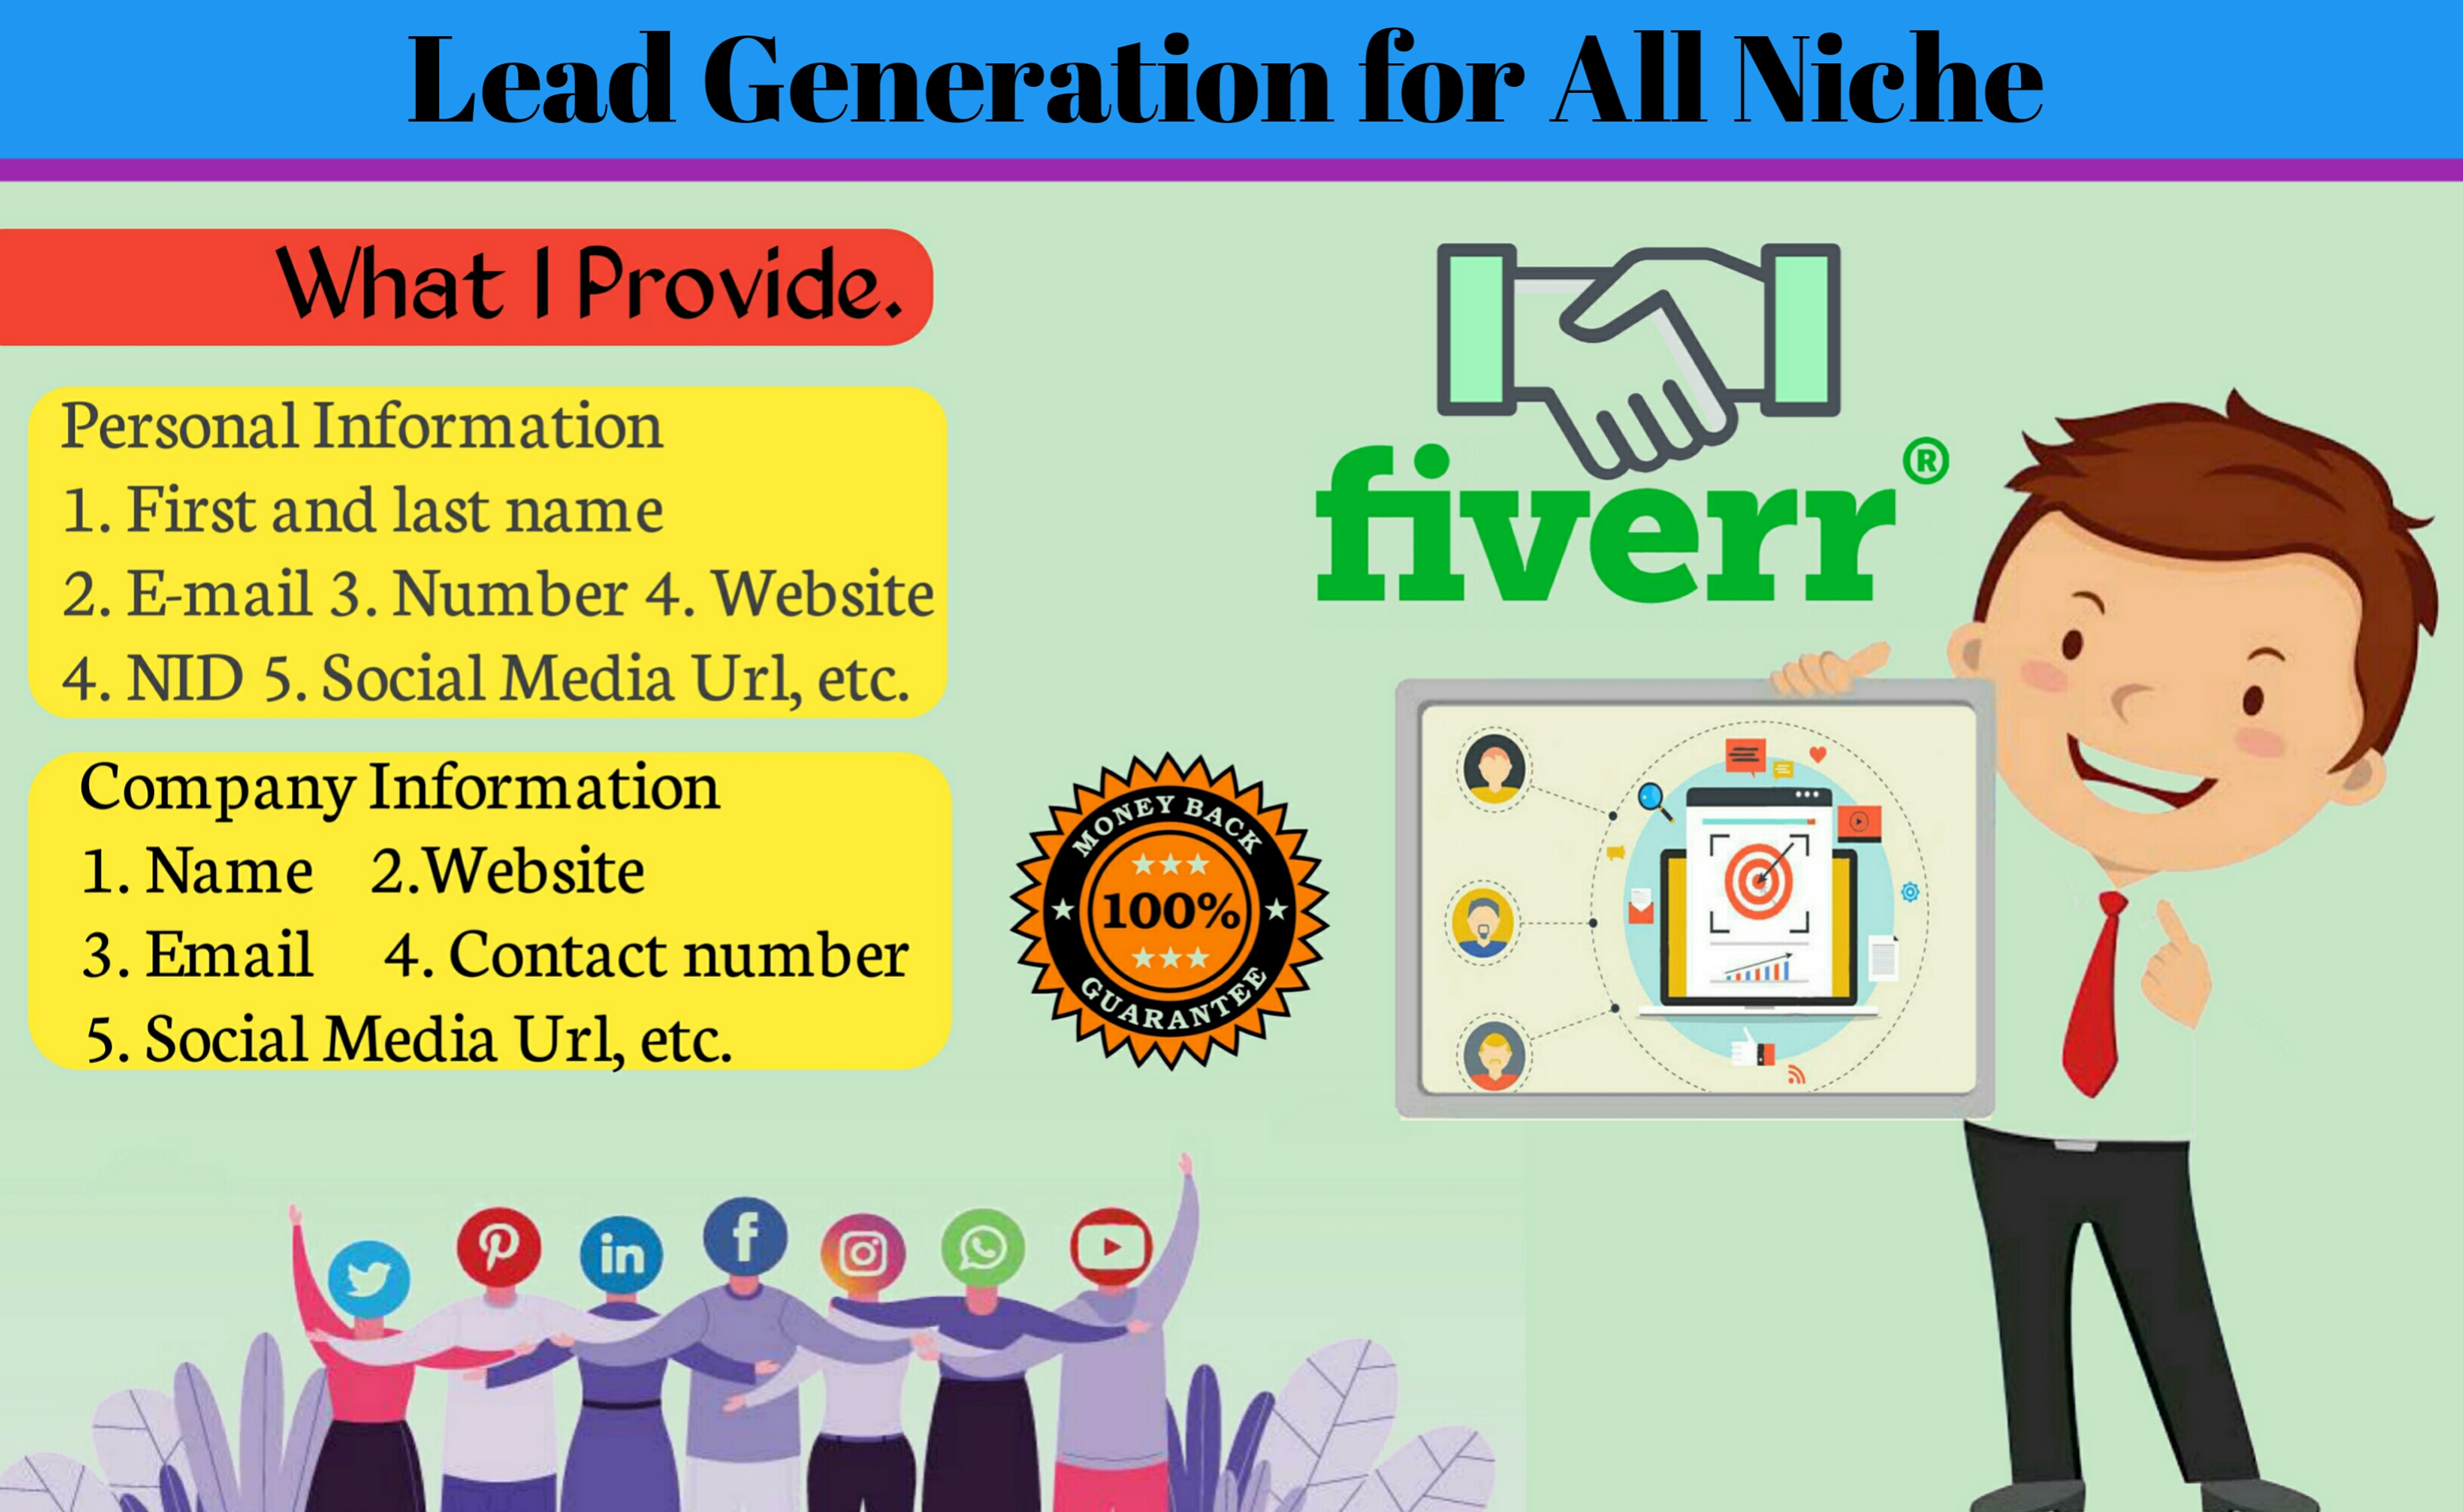 I will do lead generation for all niche, b2b lead generation, linkedin lead generation